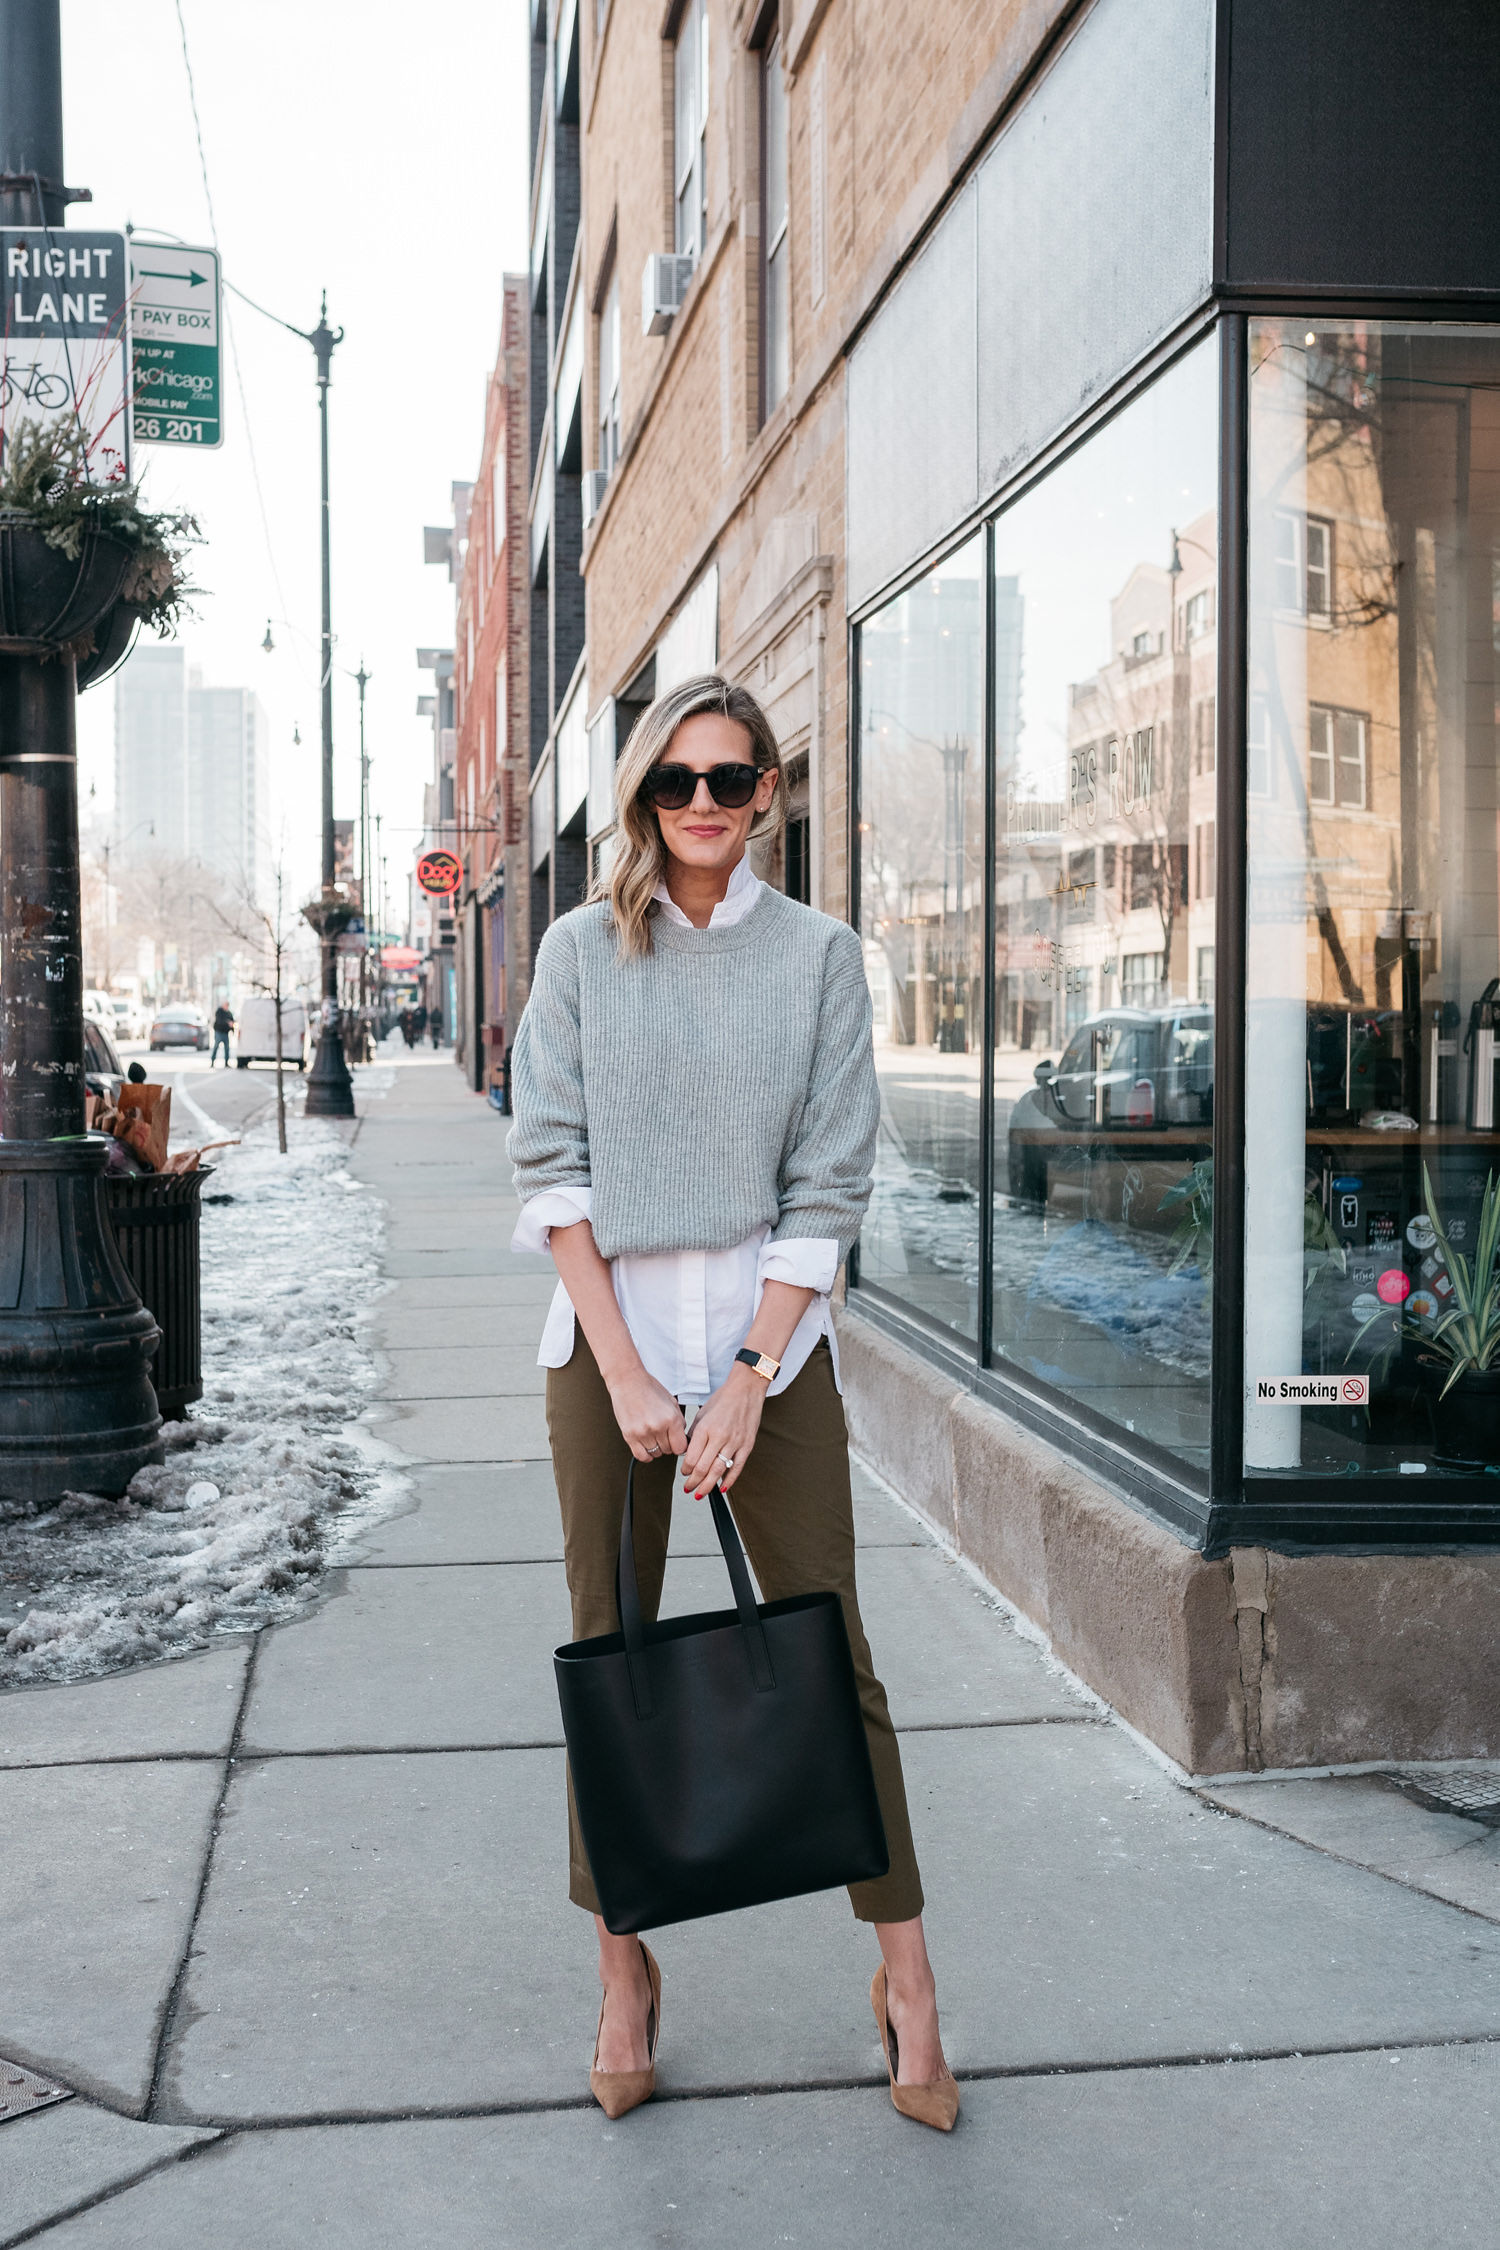 Everlane work staples  // the $50 work pant